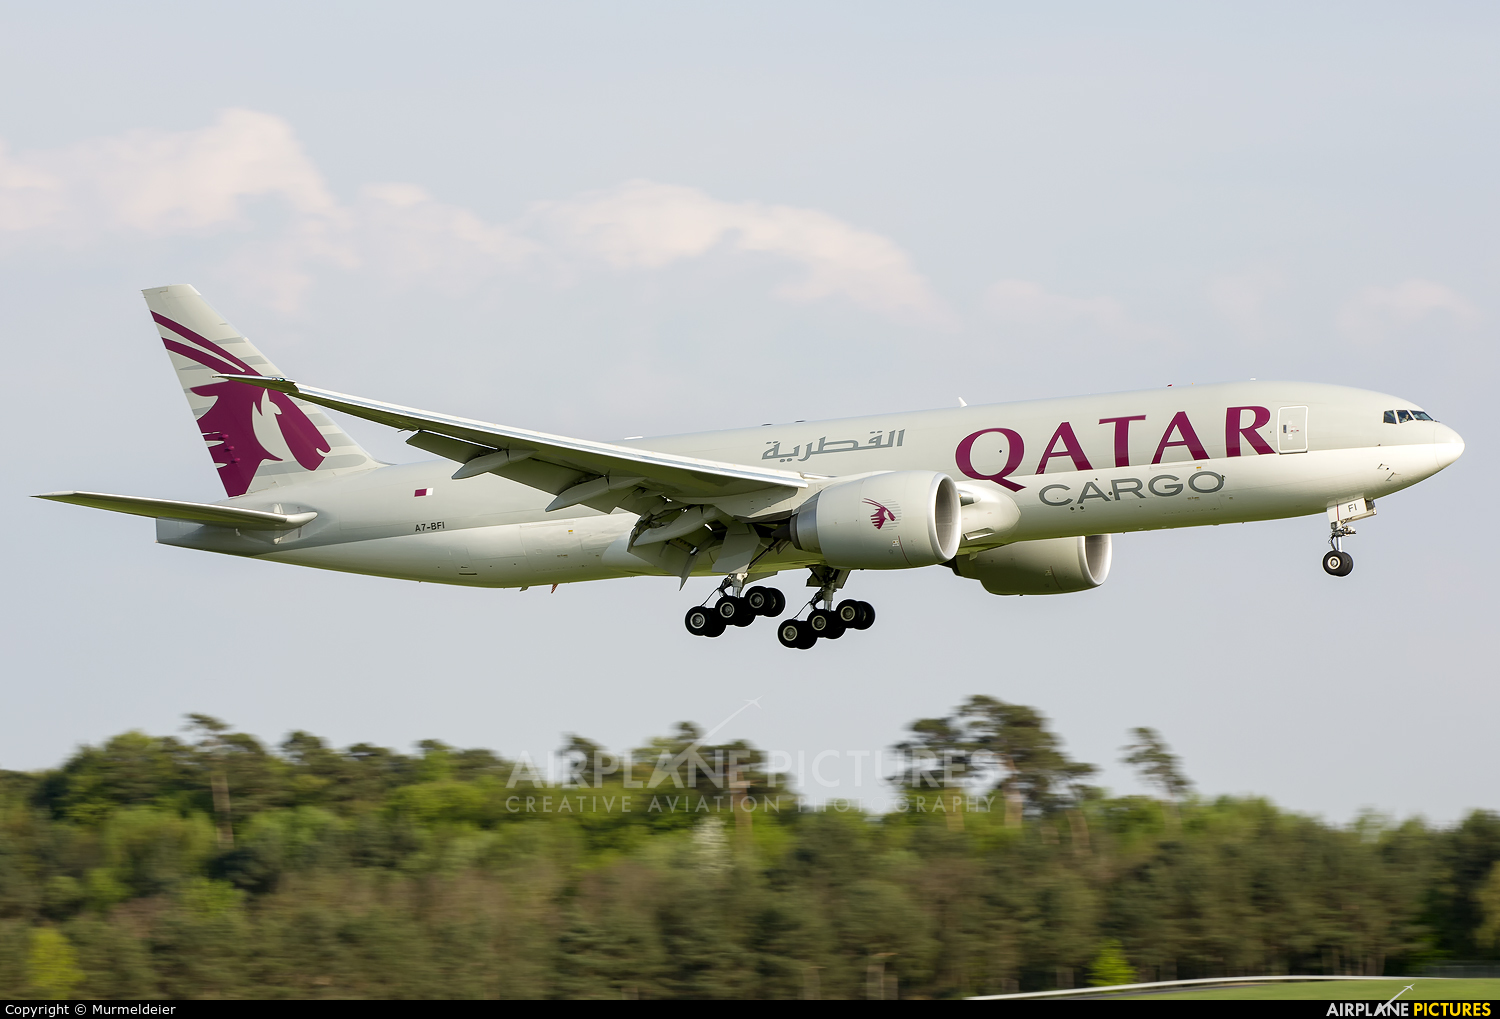 Qatar Airways Cargo A7-BFI aircraft at Luxembourg - Findel